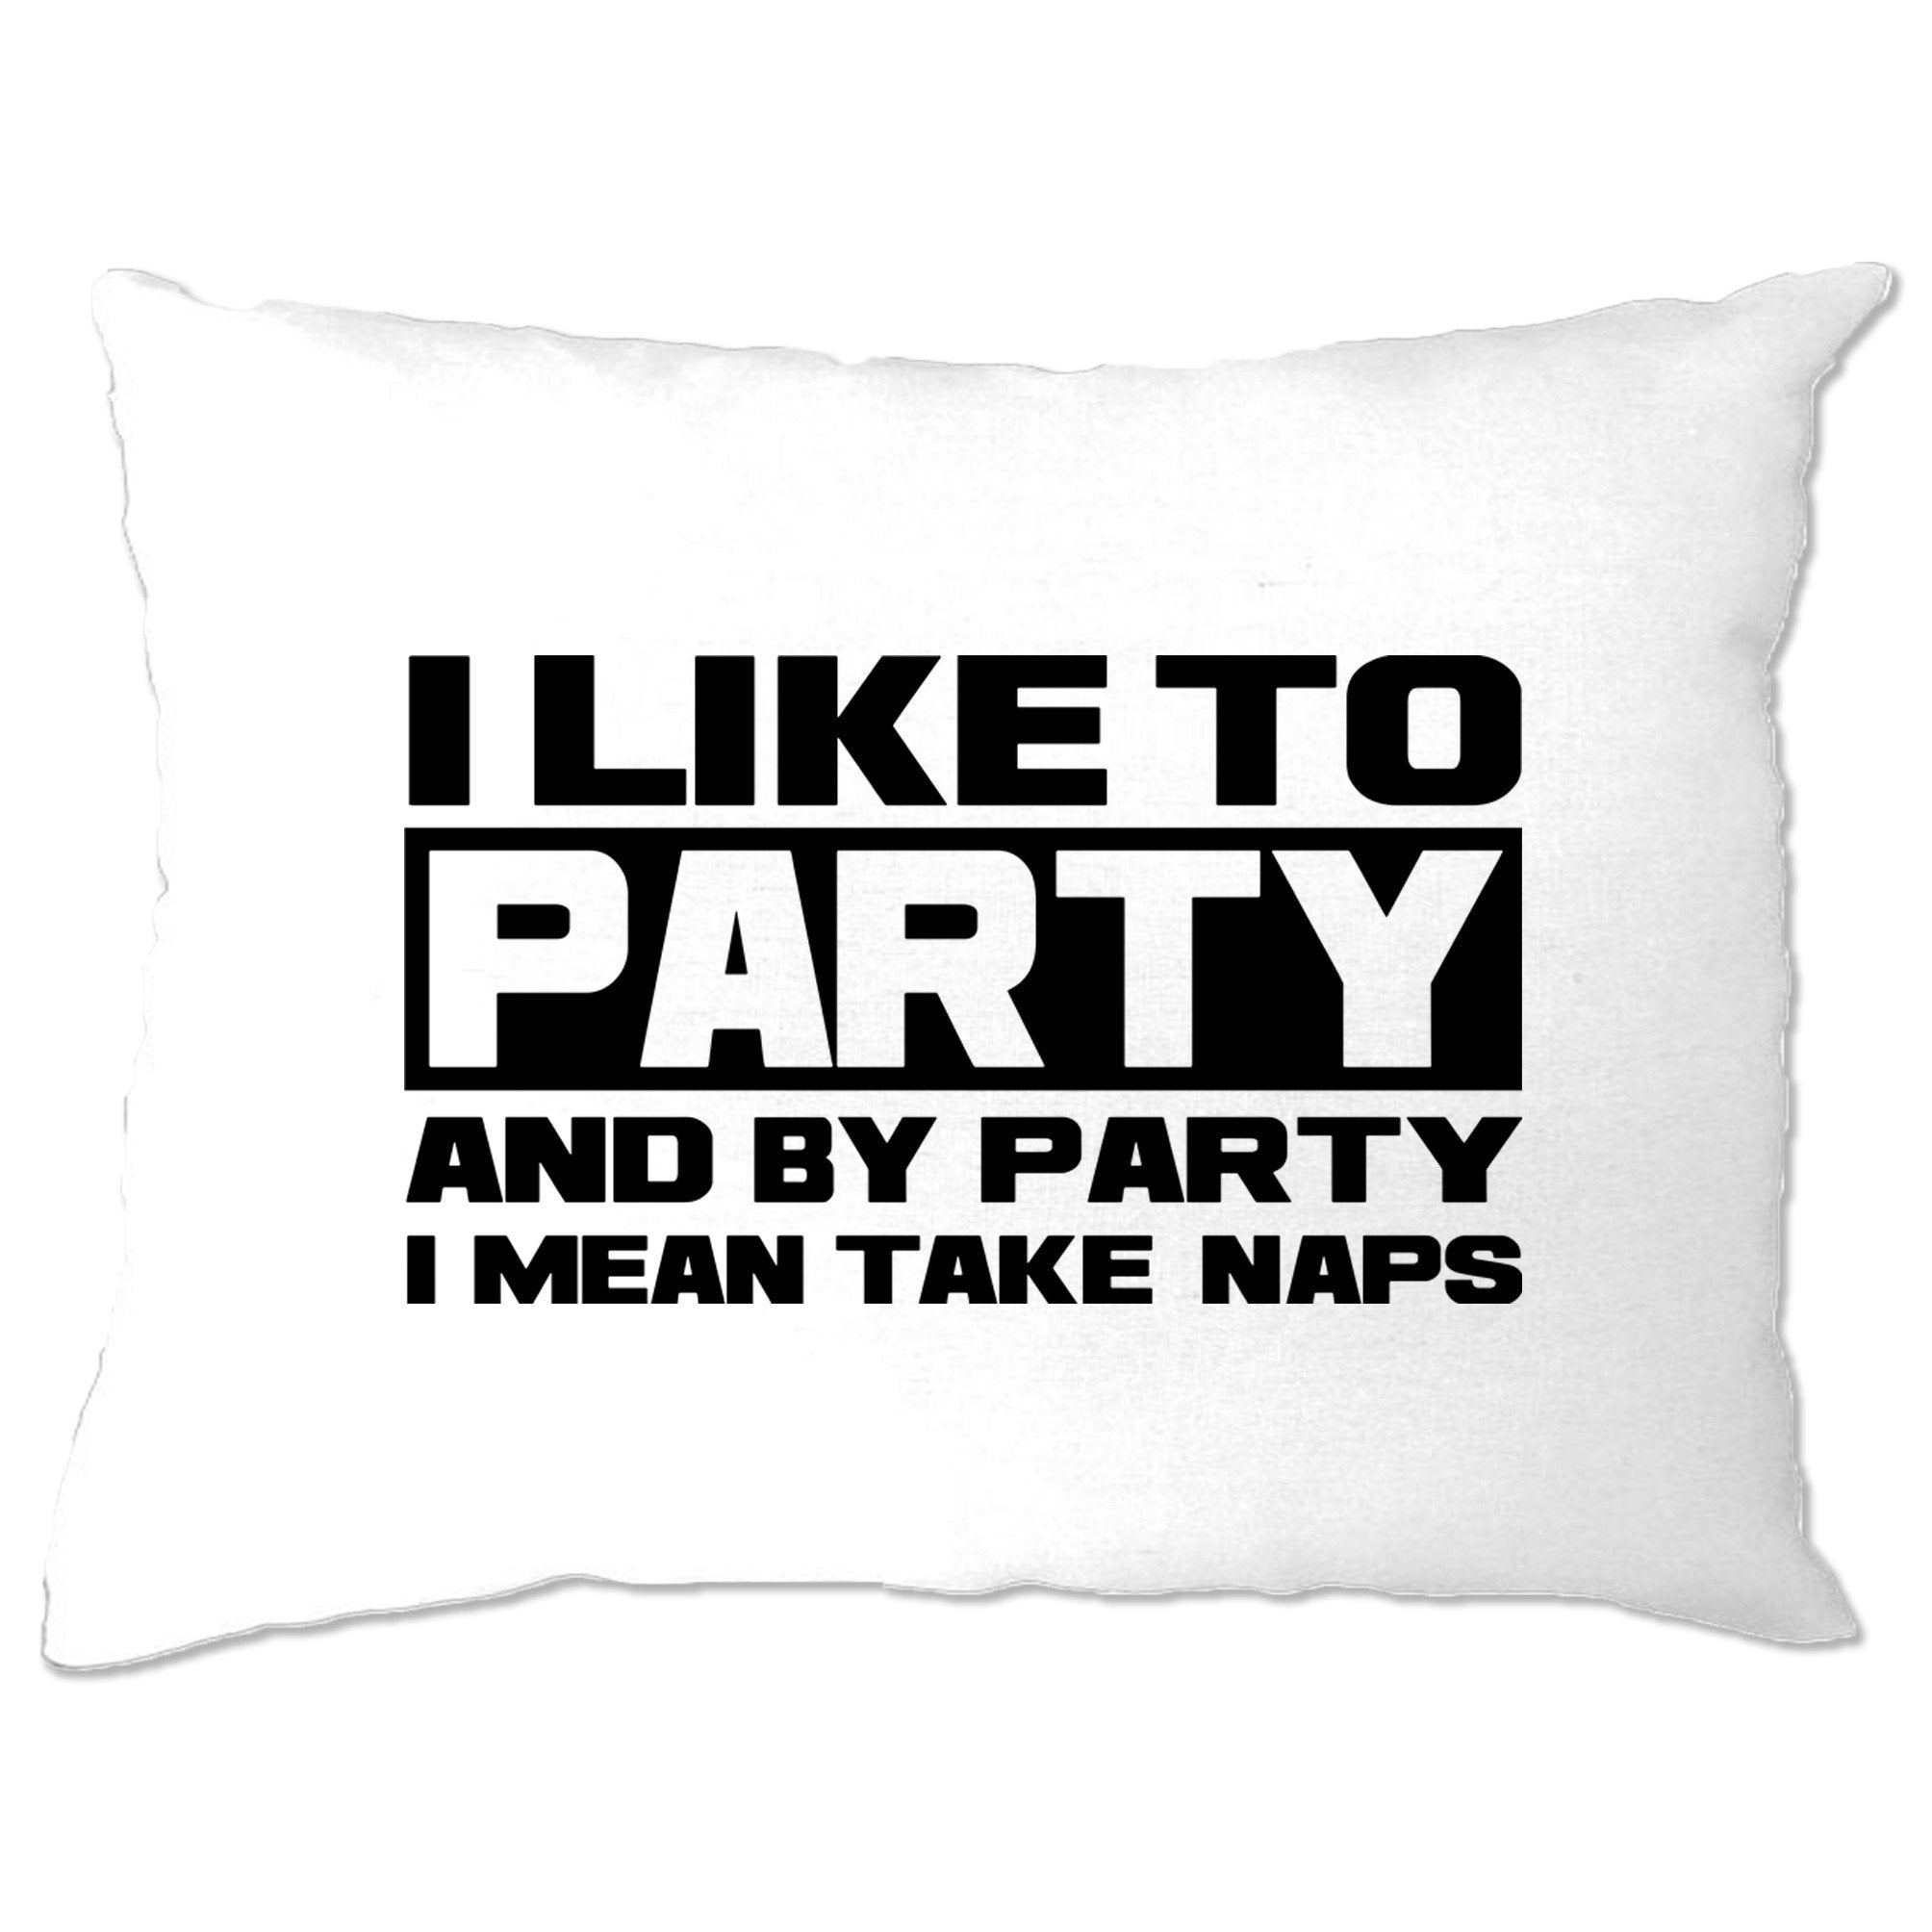 Novelty Pillow Case I Like To Party, I Mean Take Naps